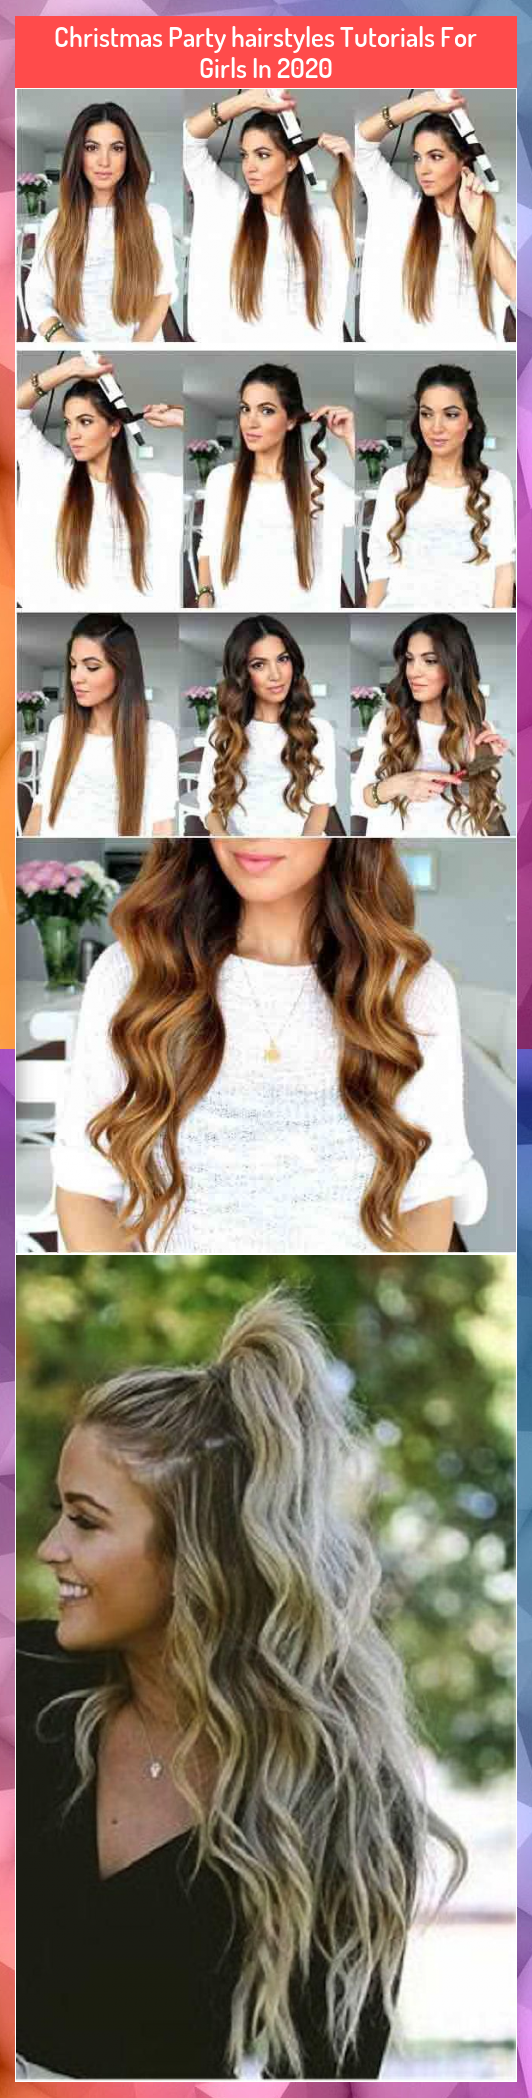 Christmas Party hairstyles Tutorials For Girls In 2020<br />#Christmas #girls #Hairstyles #Party #Tutorials